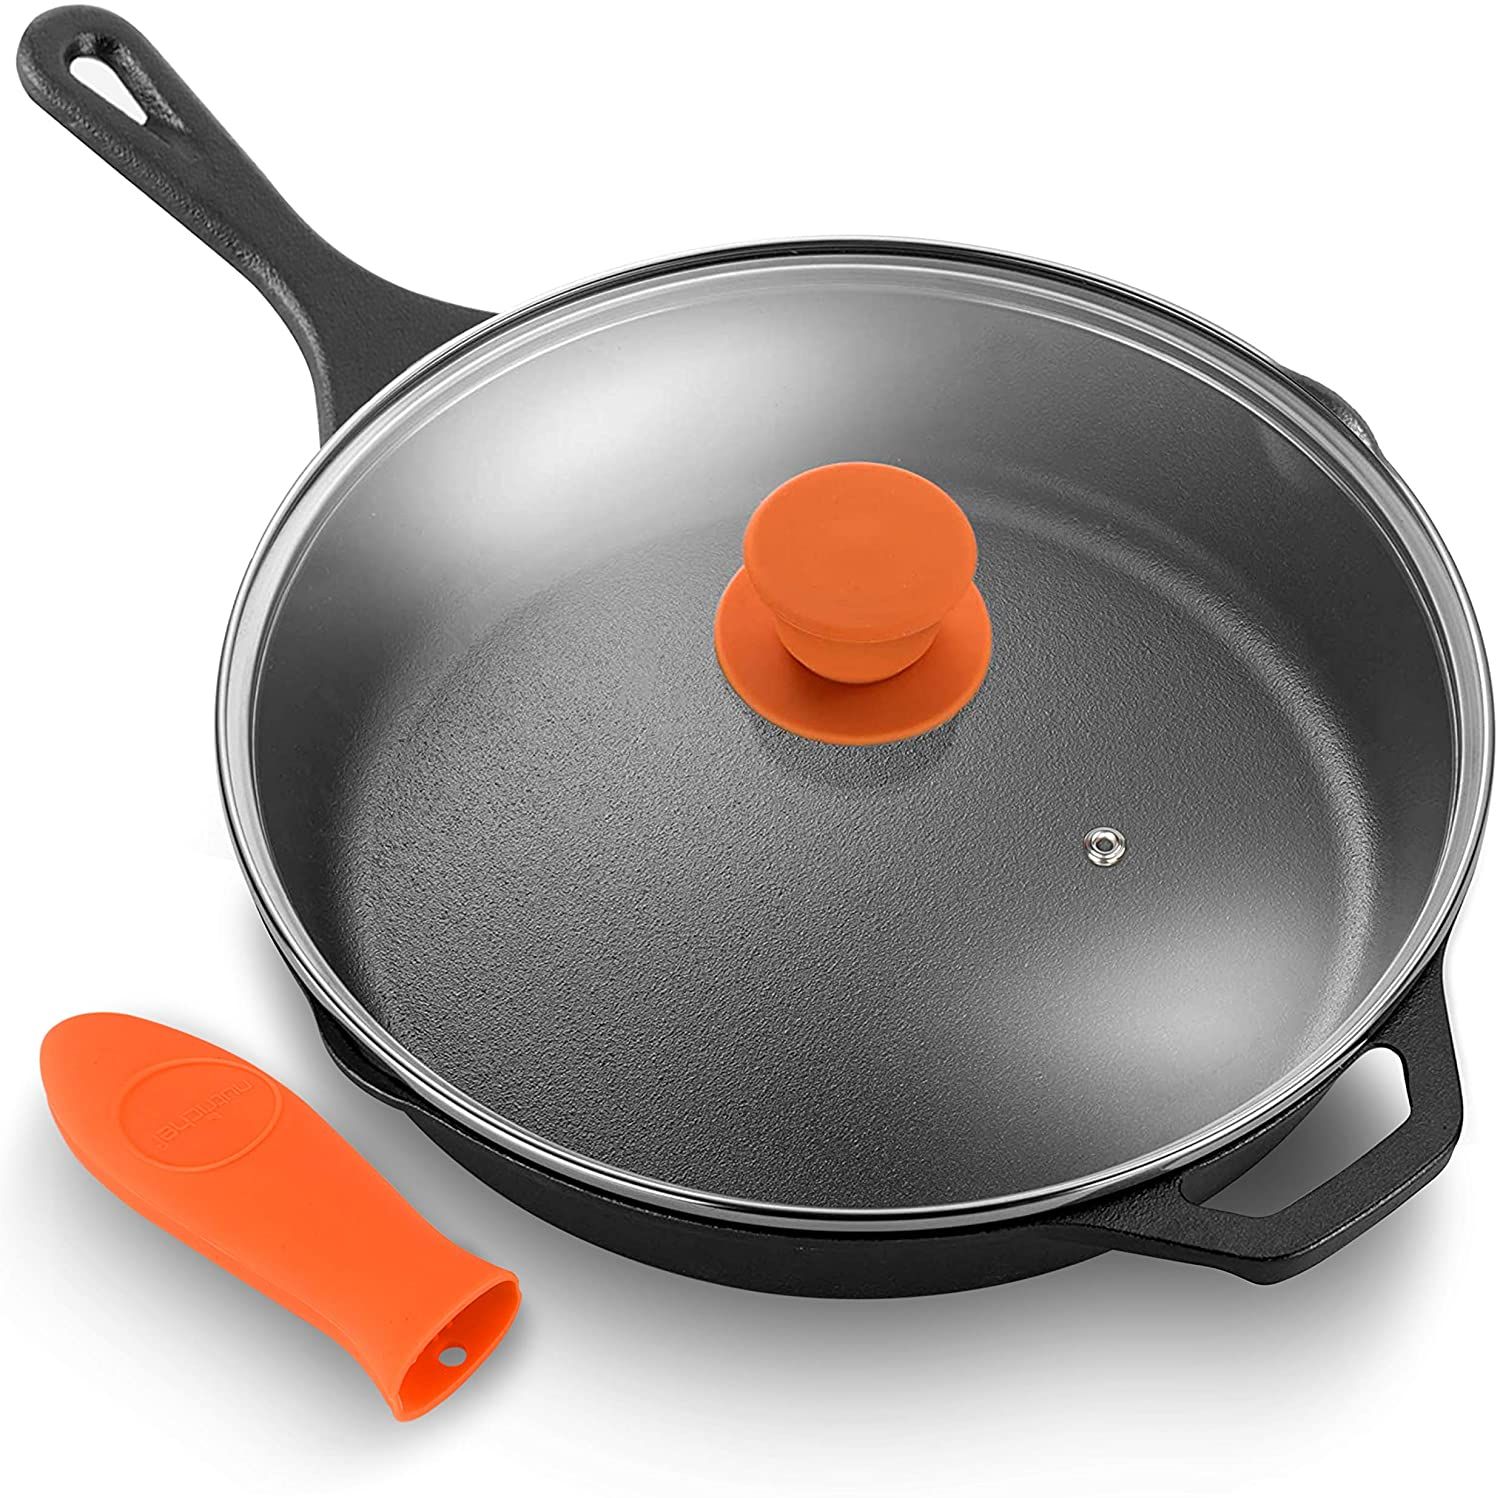 NutriChef Pre-Seasoned Cast Iron Fry Pan with Glass Lid & Silicone Handle, 10 inch, Black